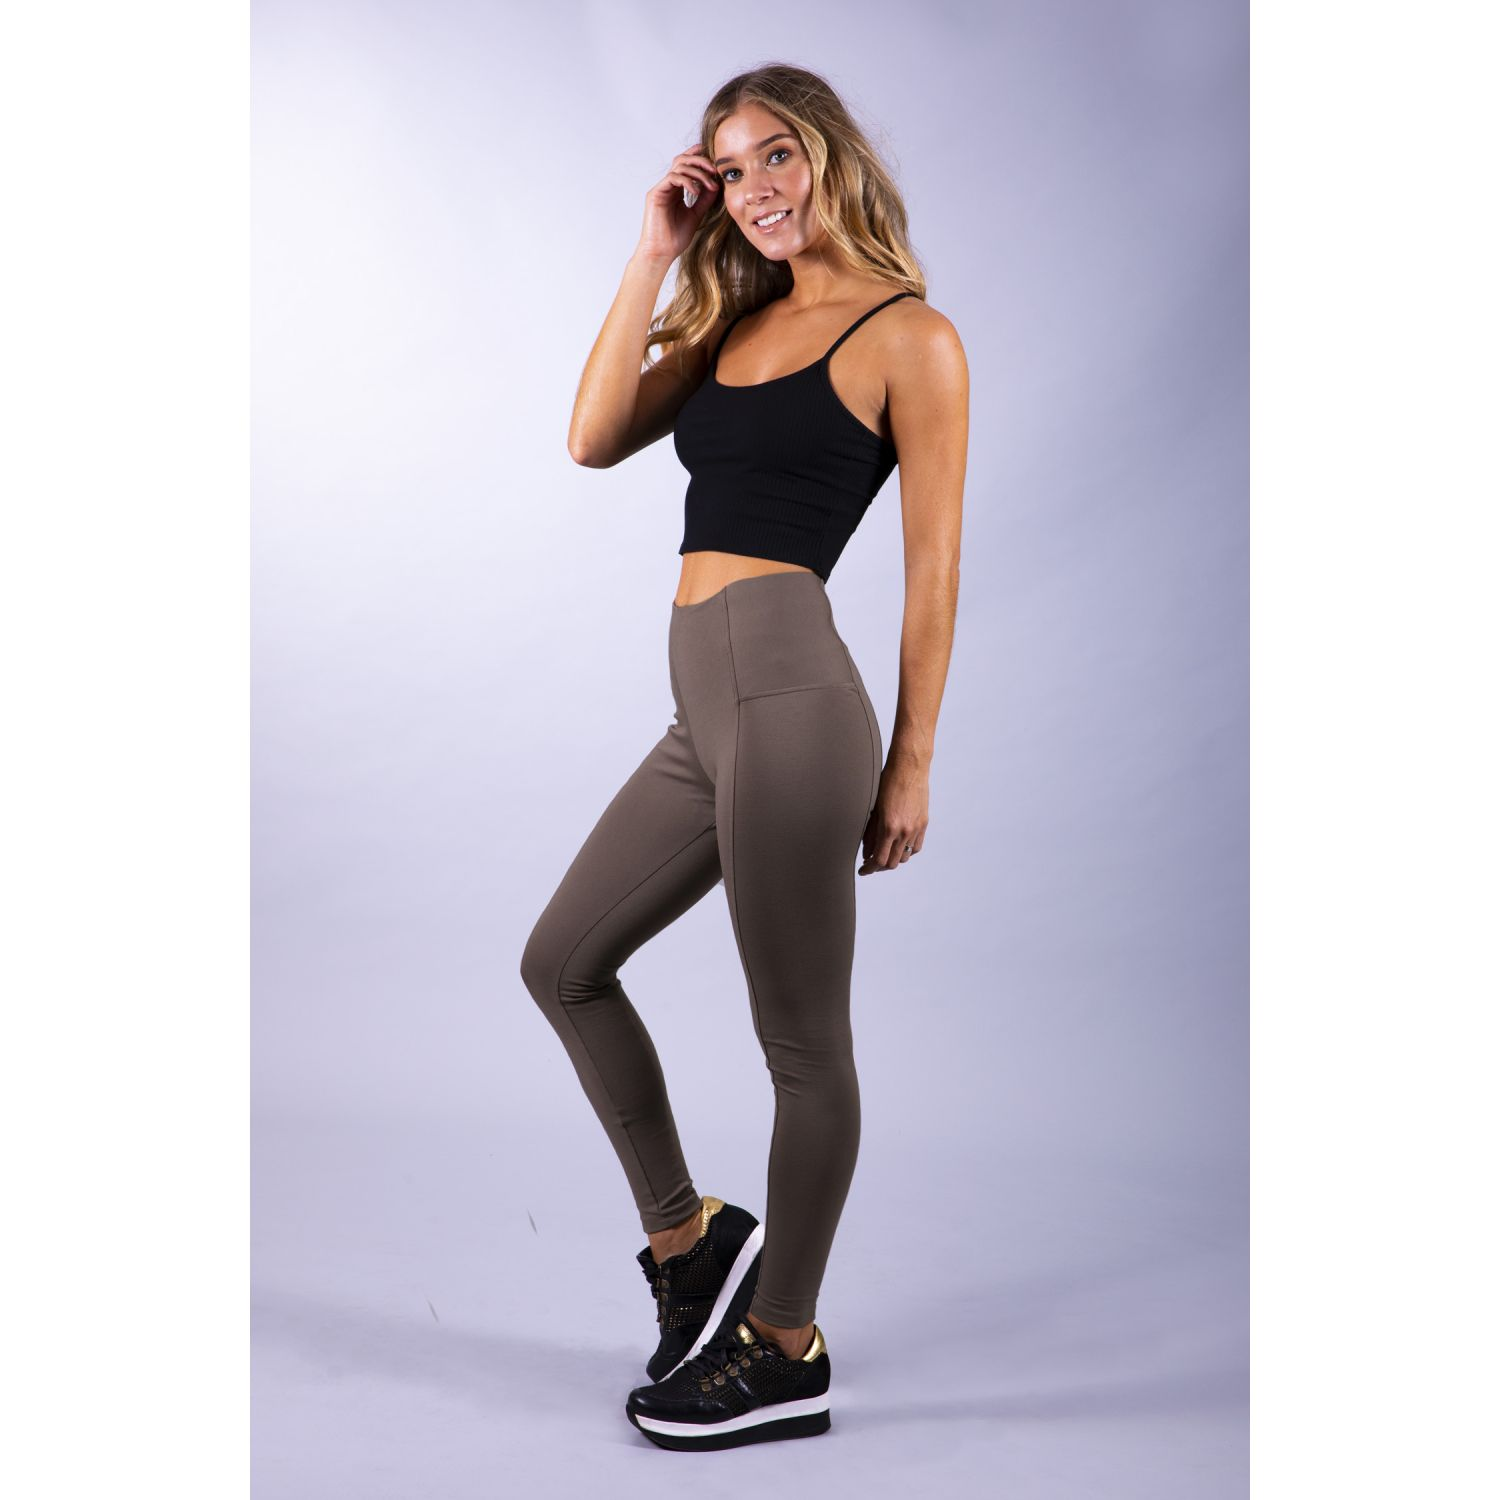 Pantalonia Leg Color Elastico Cintura Cubierto Marron Leggings